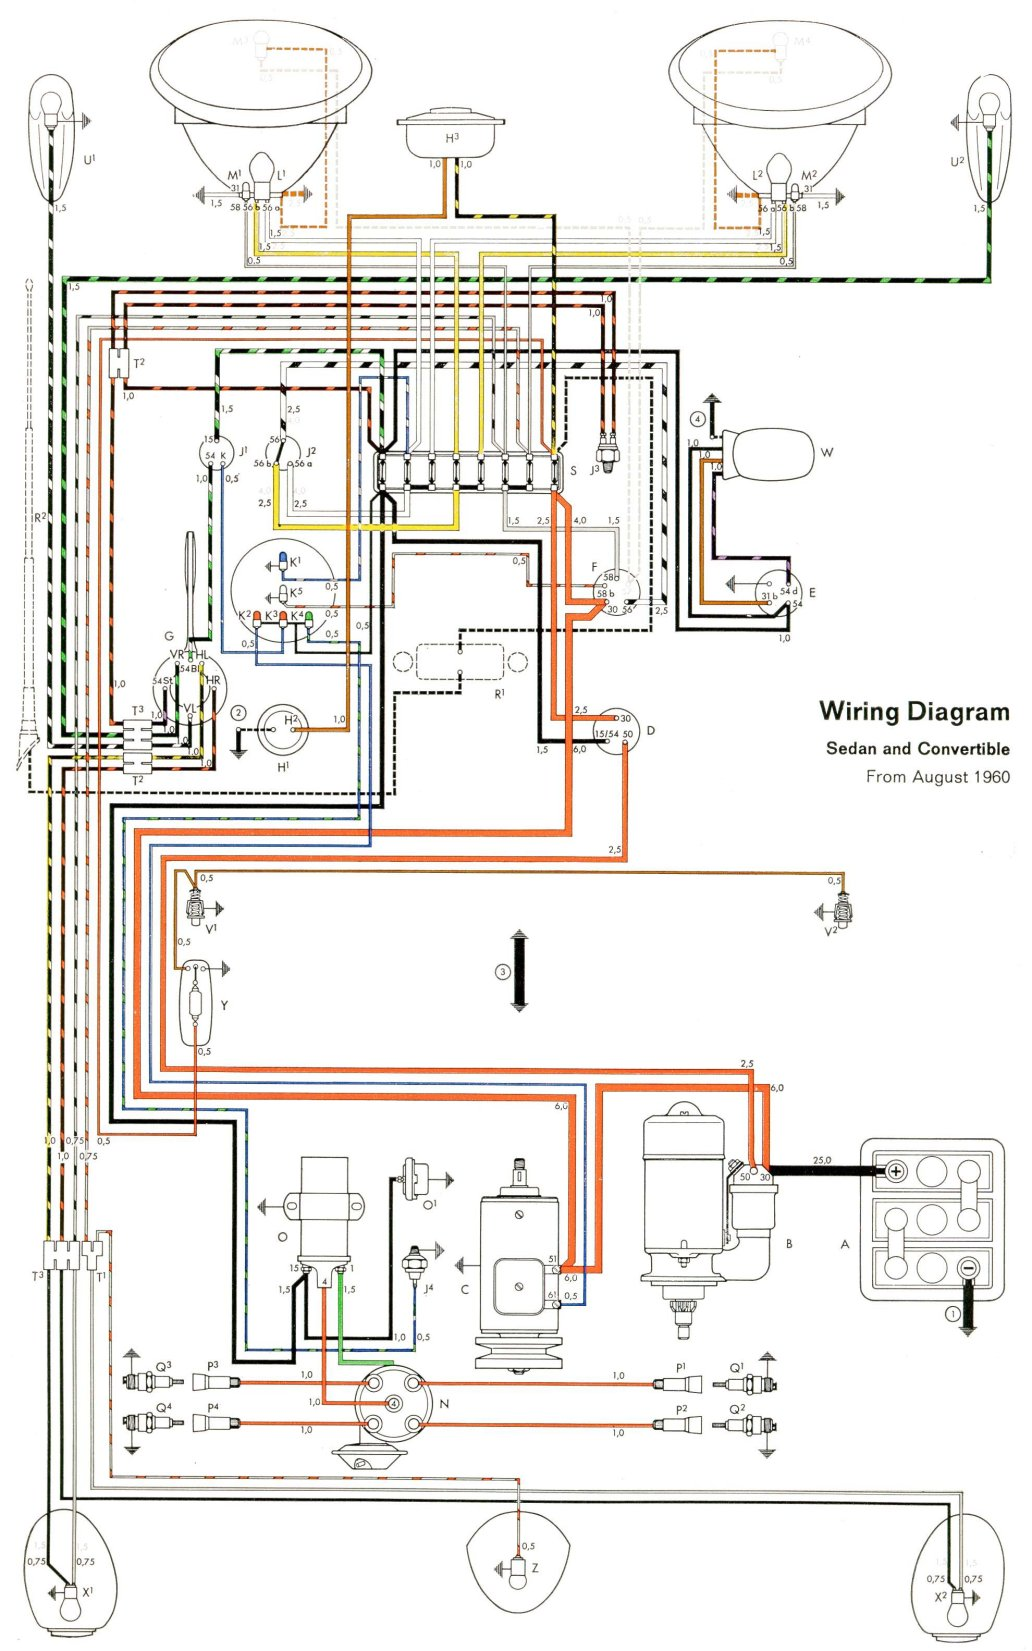 bug_61 thesamba com type 1 wiring diagrams 1969 vw beetle wiring diagram at bayanpartner.co